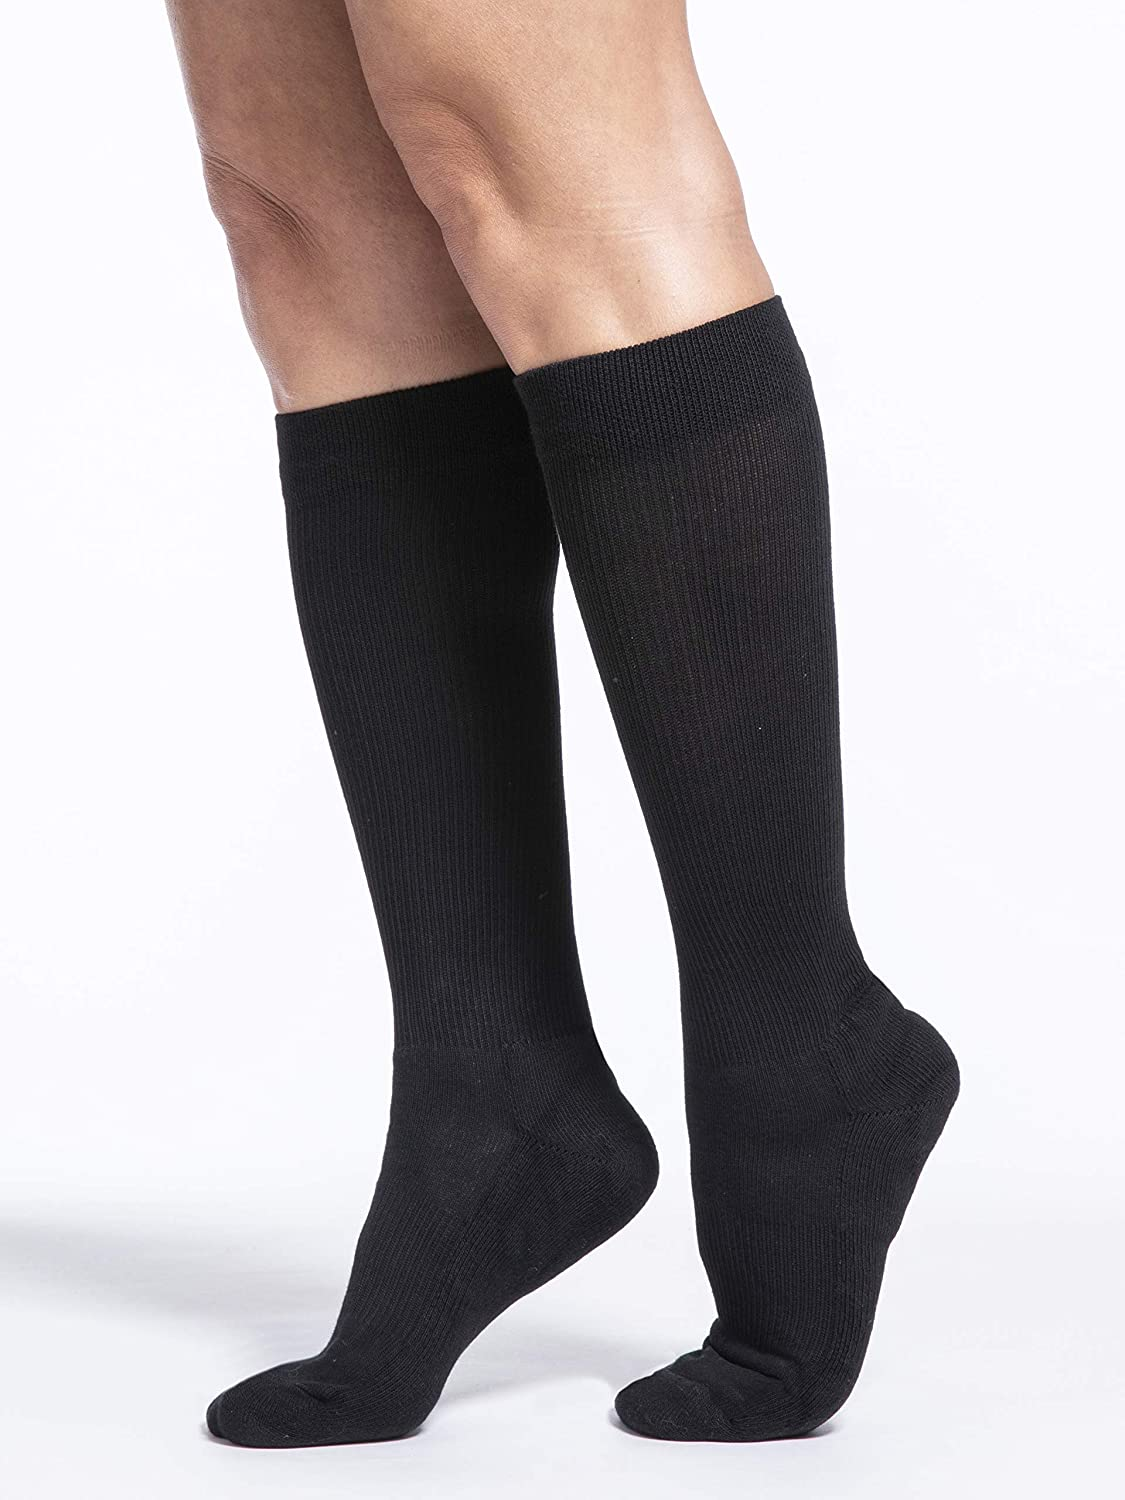 SIGVARIS Women's Motion Cushioned Cotton Closed 55% OFF Toe Calf-Hig Clearance SALE! Limited time! 360